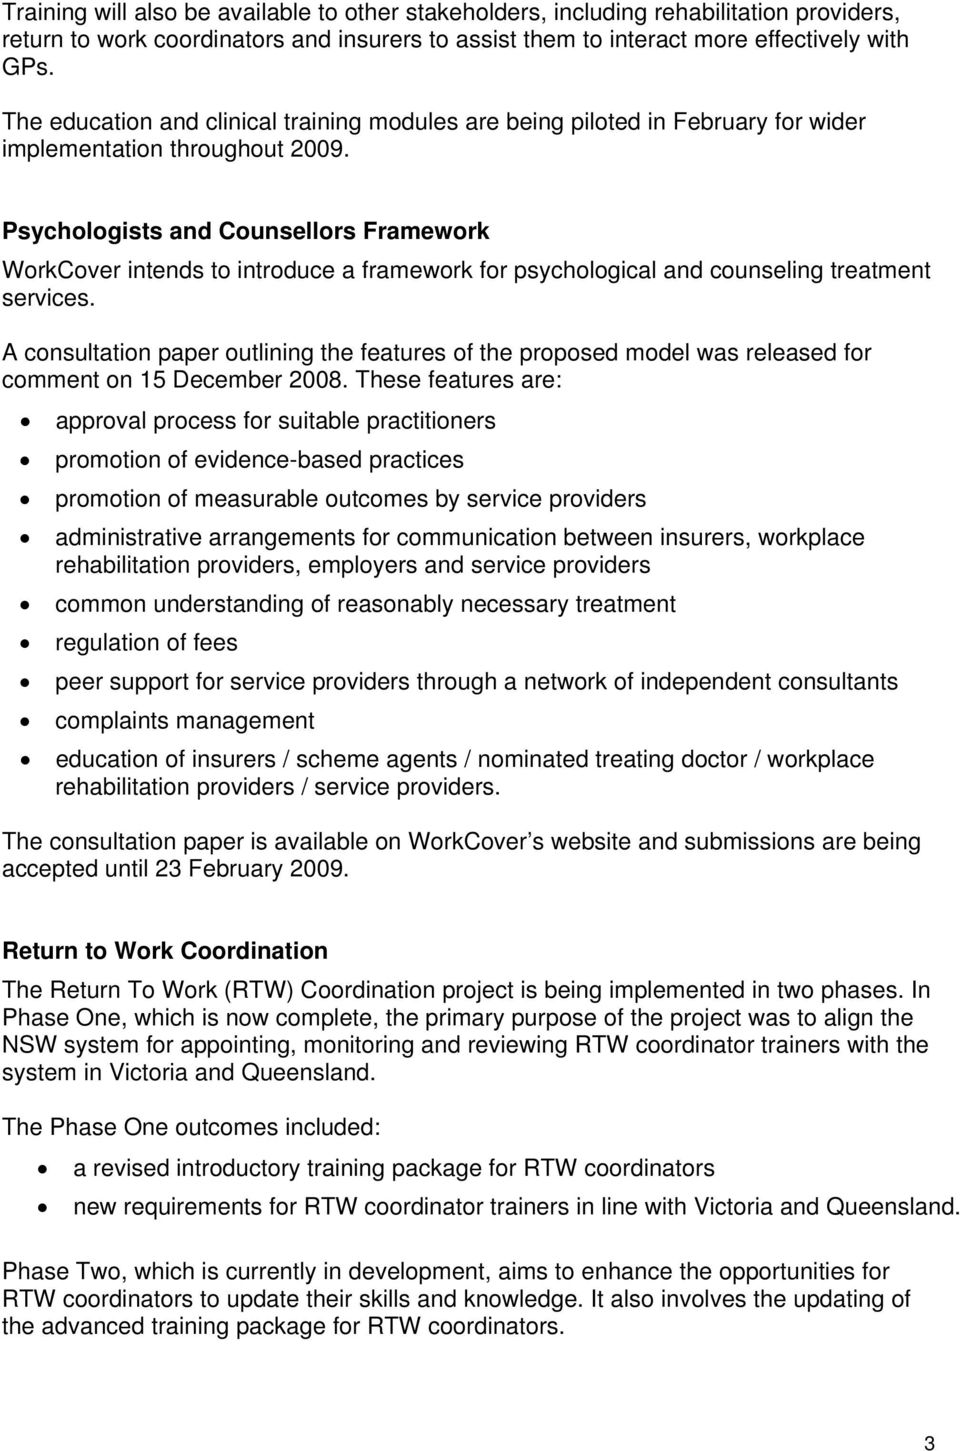 Psychologists and Counsellors Framework WorkCover intends to introduce a framework for psychological and counseling treatment services.